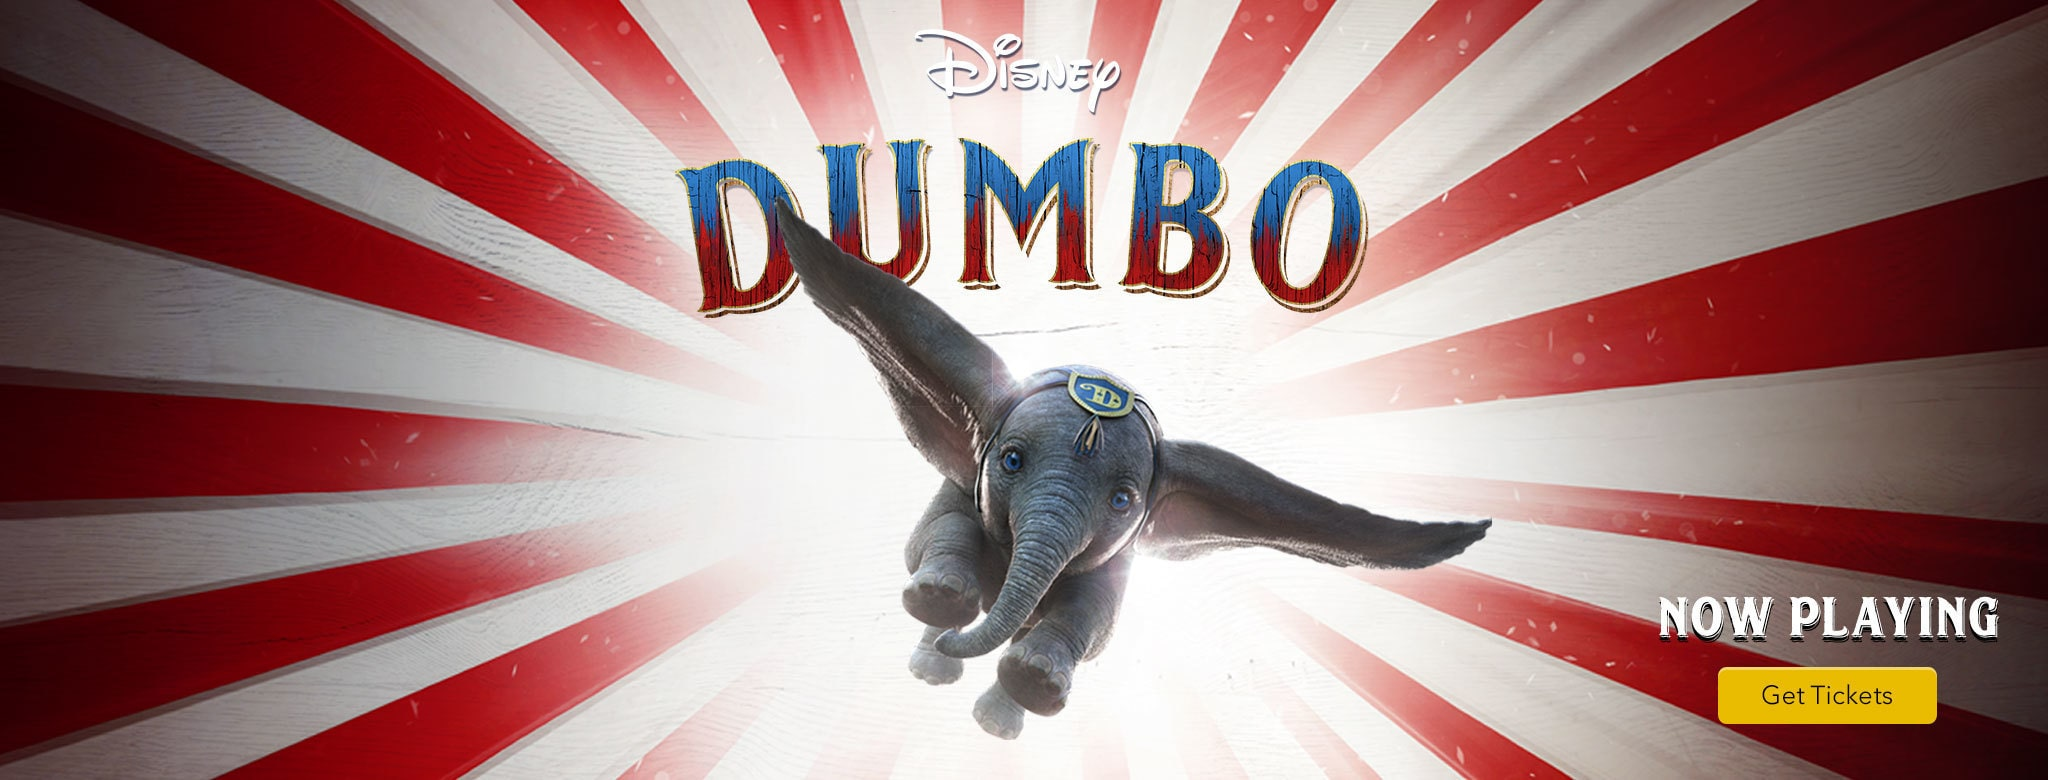 Disney's Dumbo -  Now Playing - Get Tickets